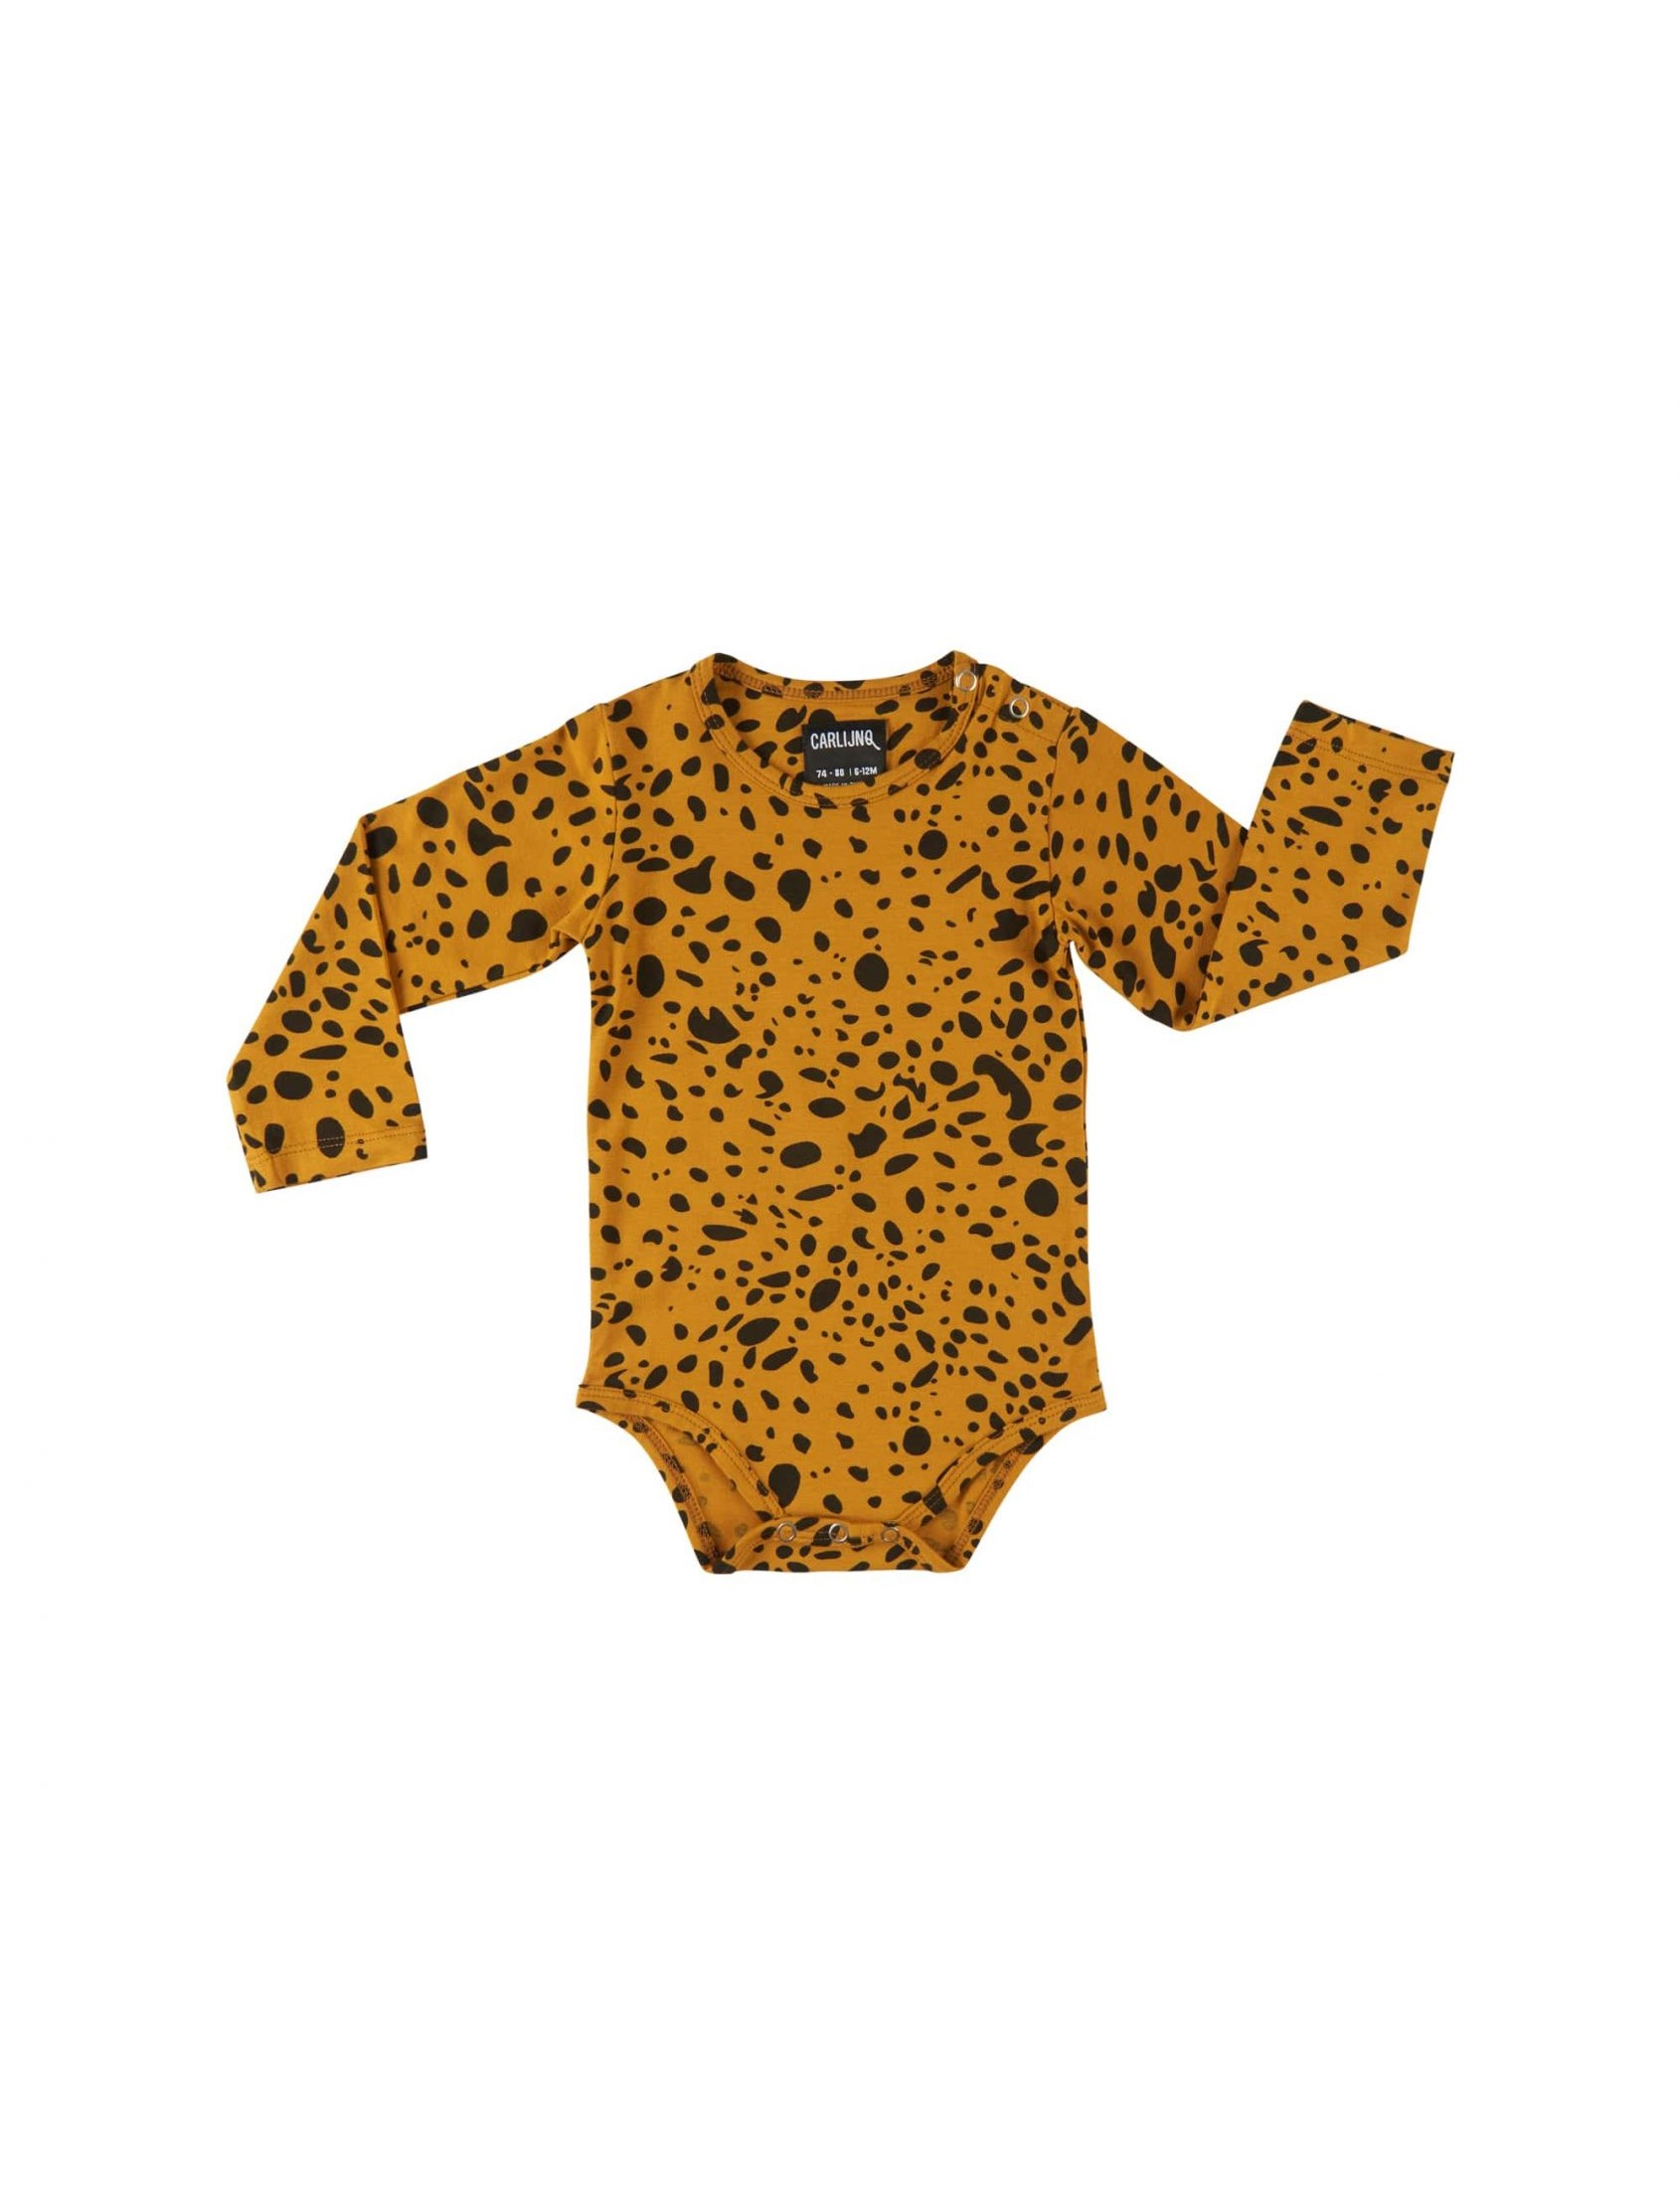 bodyANIMALPRINT_01